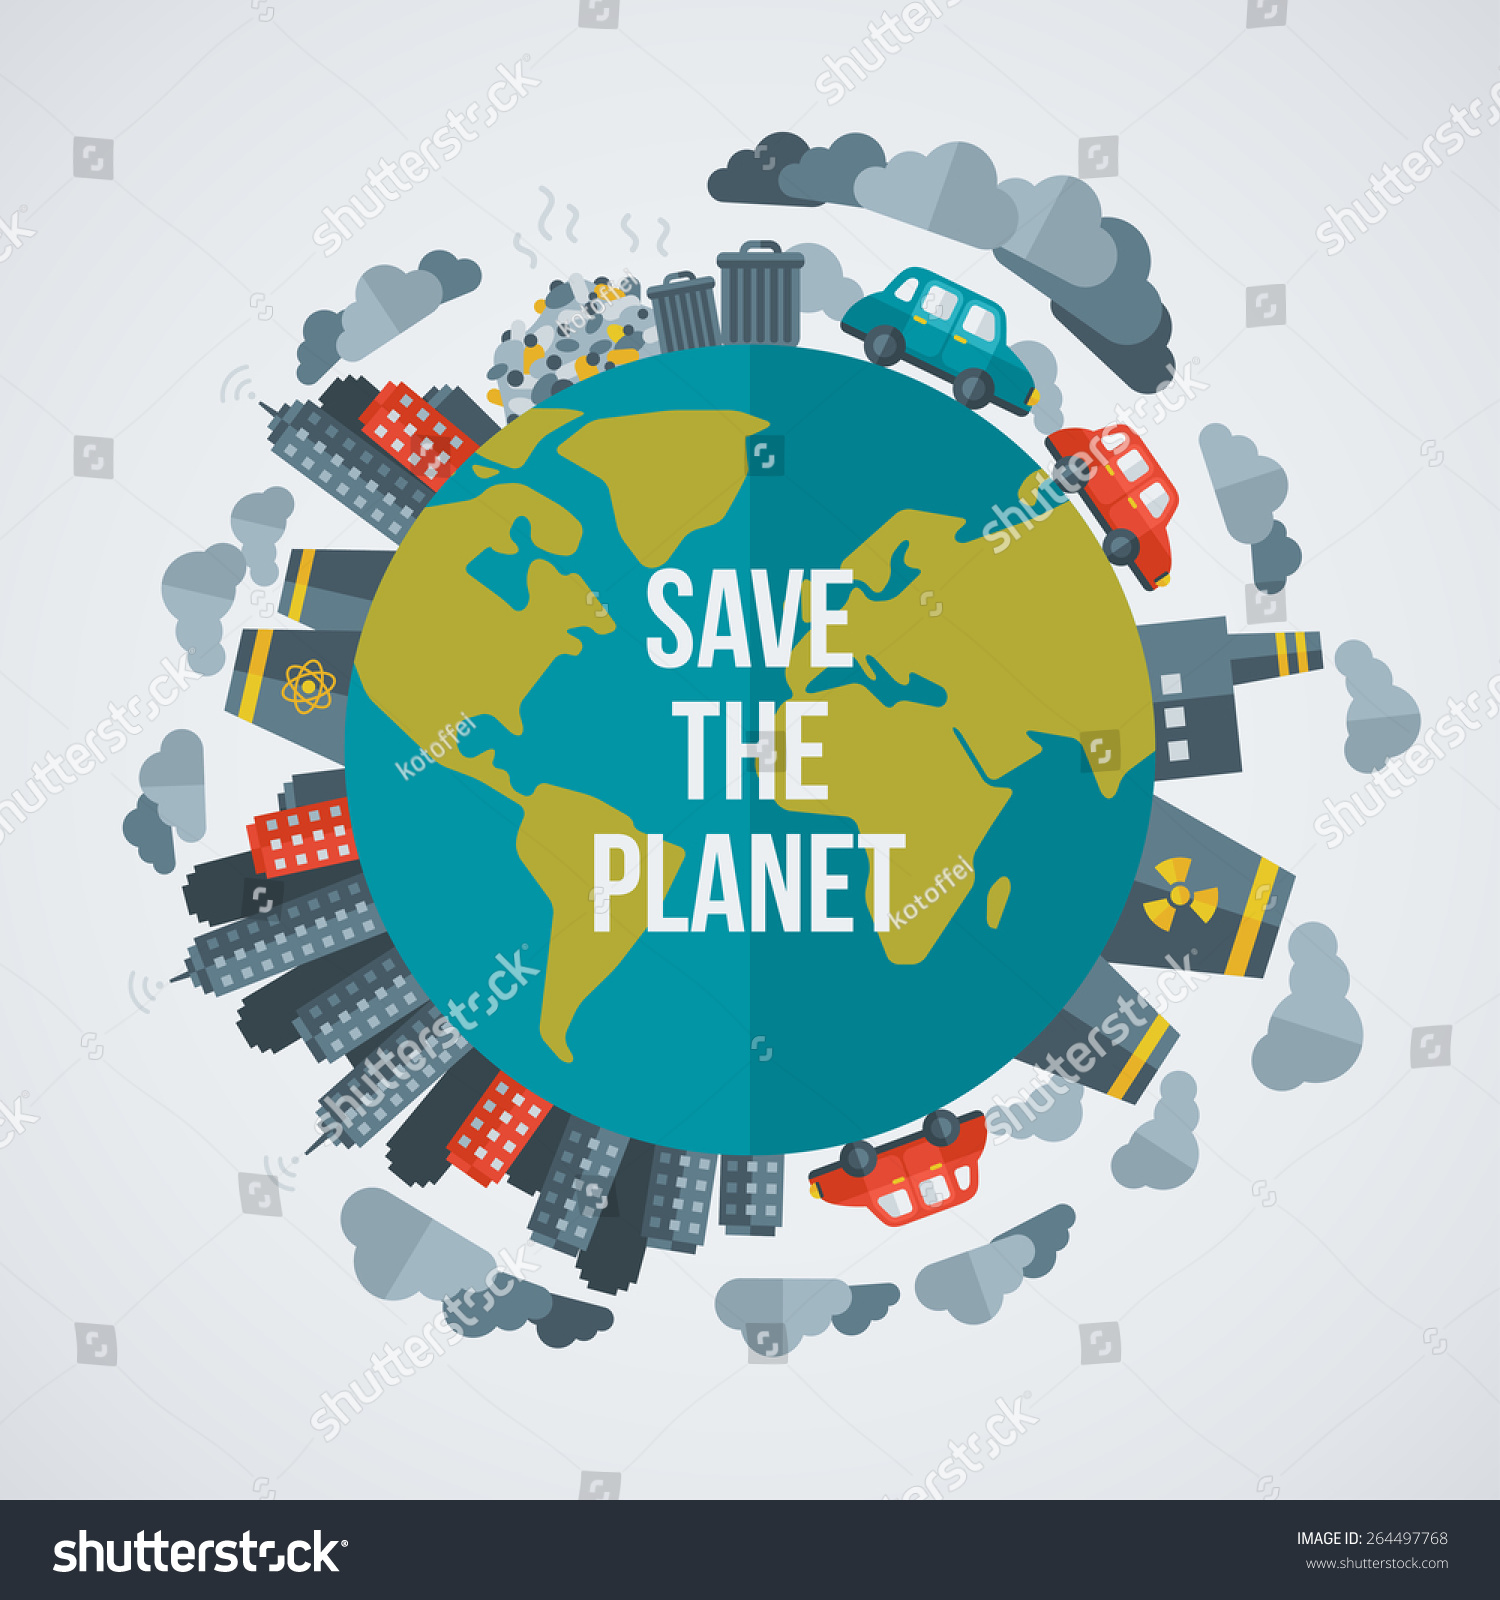 ways to make our city clean safe pollution free Little things we can do to make delhi a pollution free city could be: minimal use of plastic, polythene and non bio-degradable stuff carry your own bags for shopping and groceries, instead of getting a new polybag everytime.